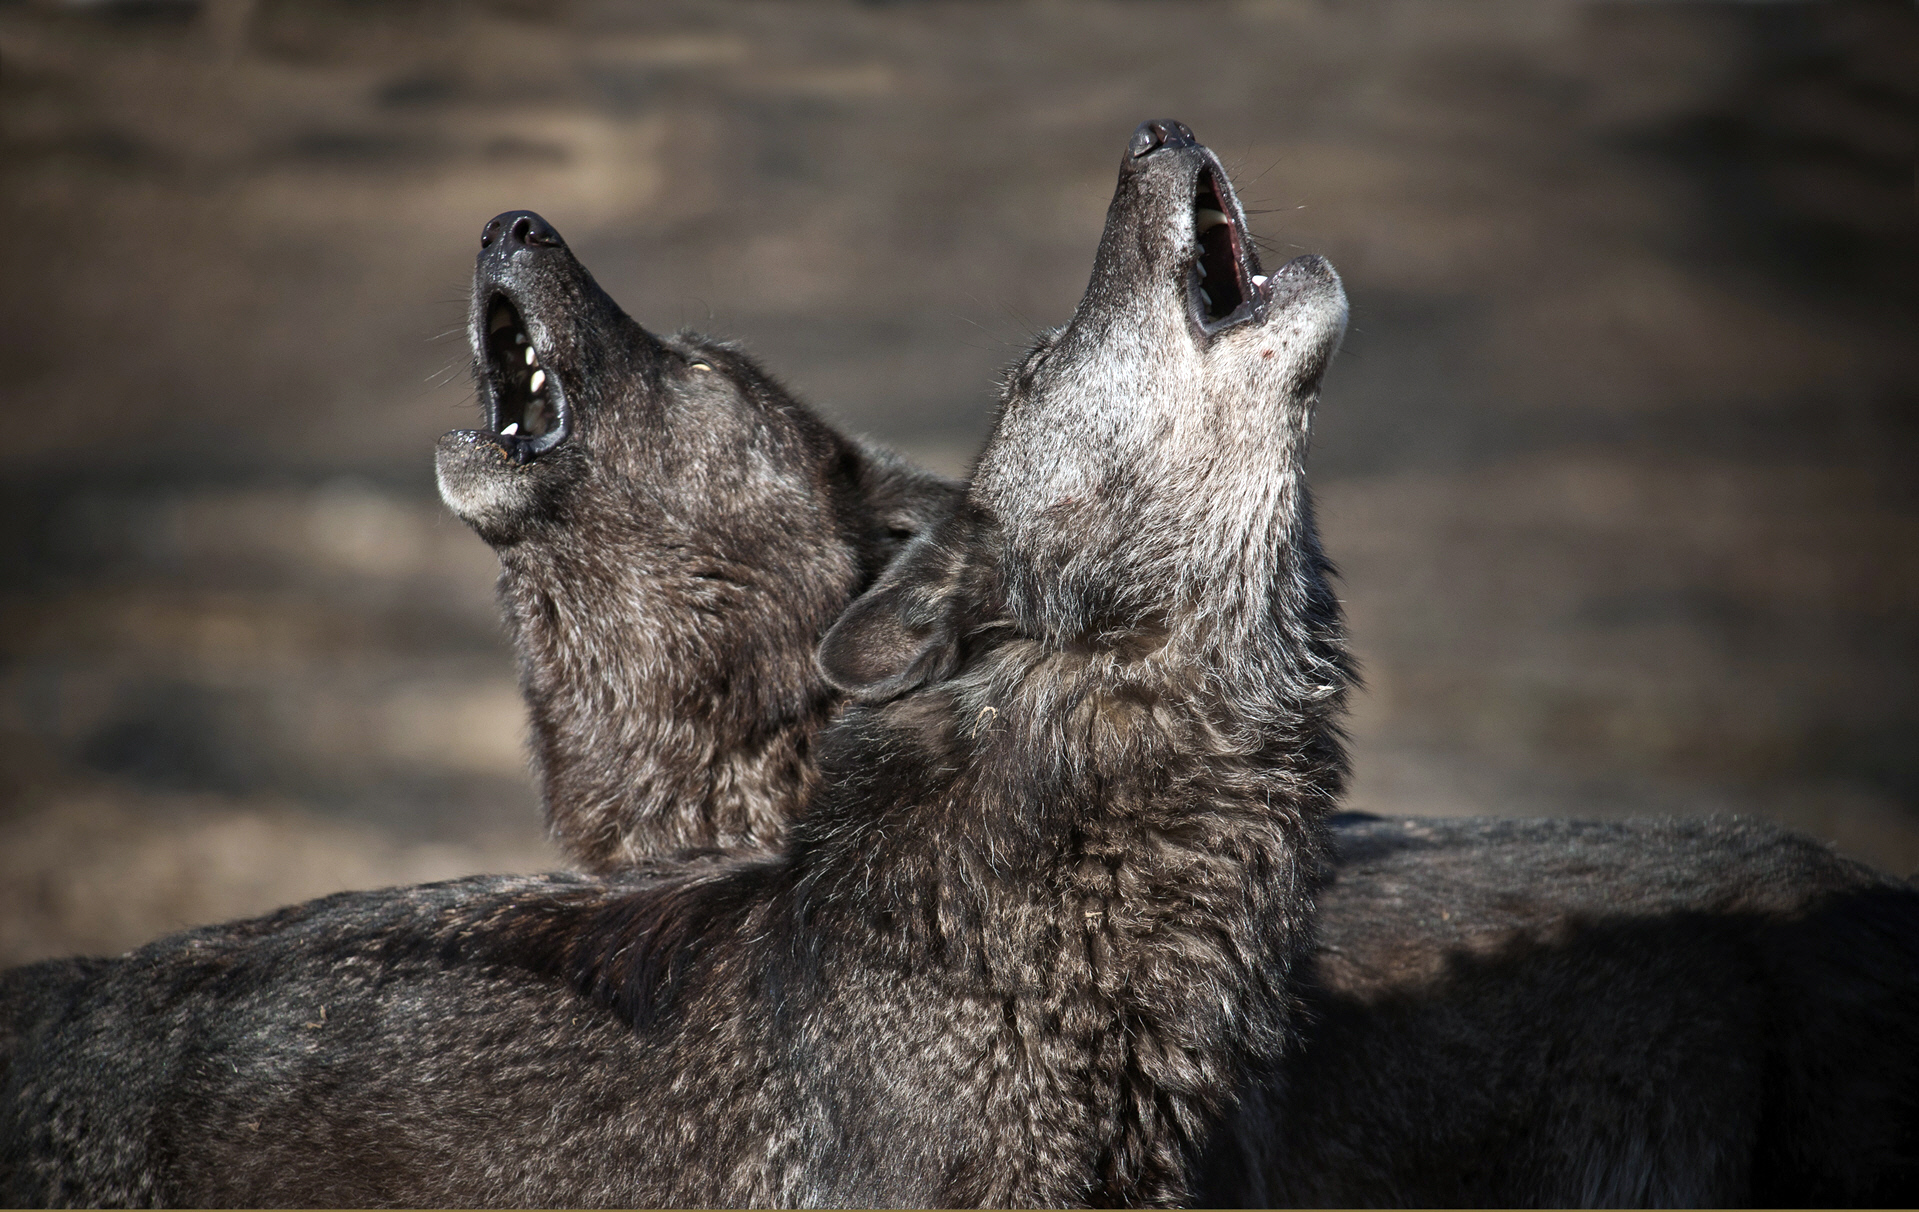 January used to be known as Wolfmonath - the month of the hungry wolf. Picture: CELL PRESS